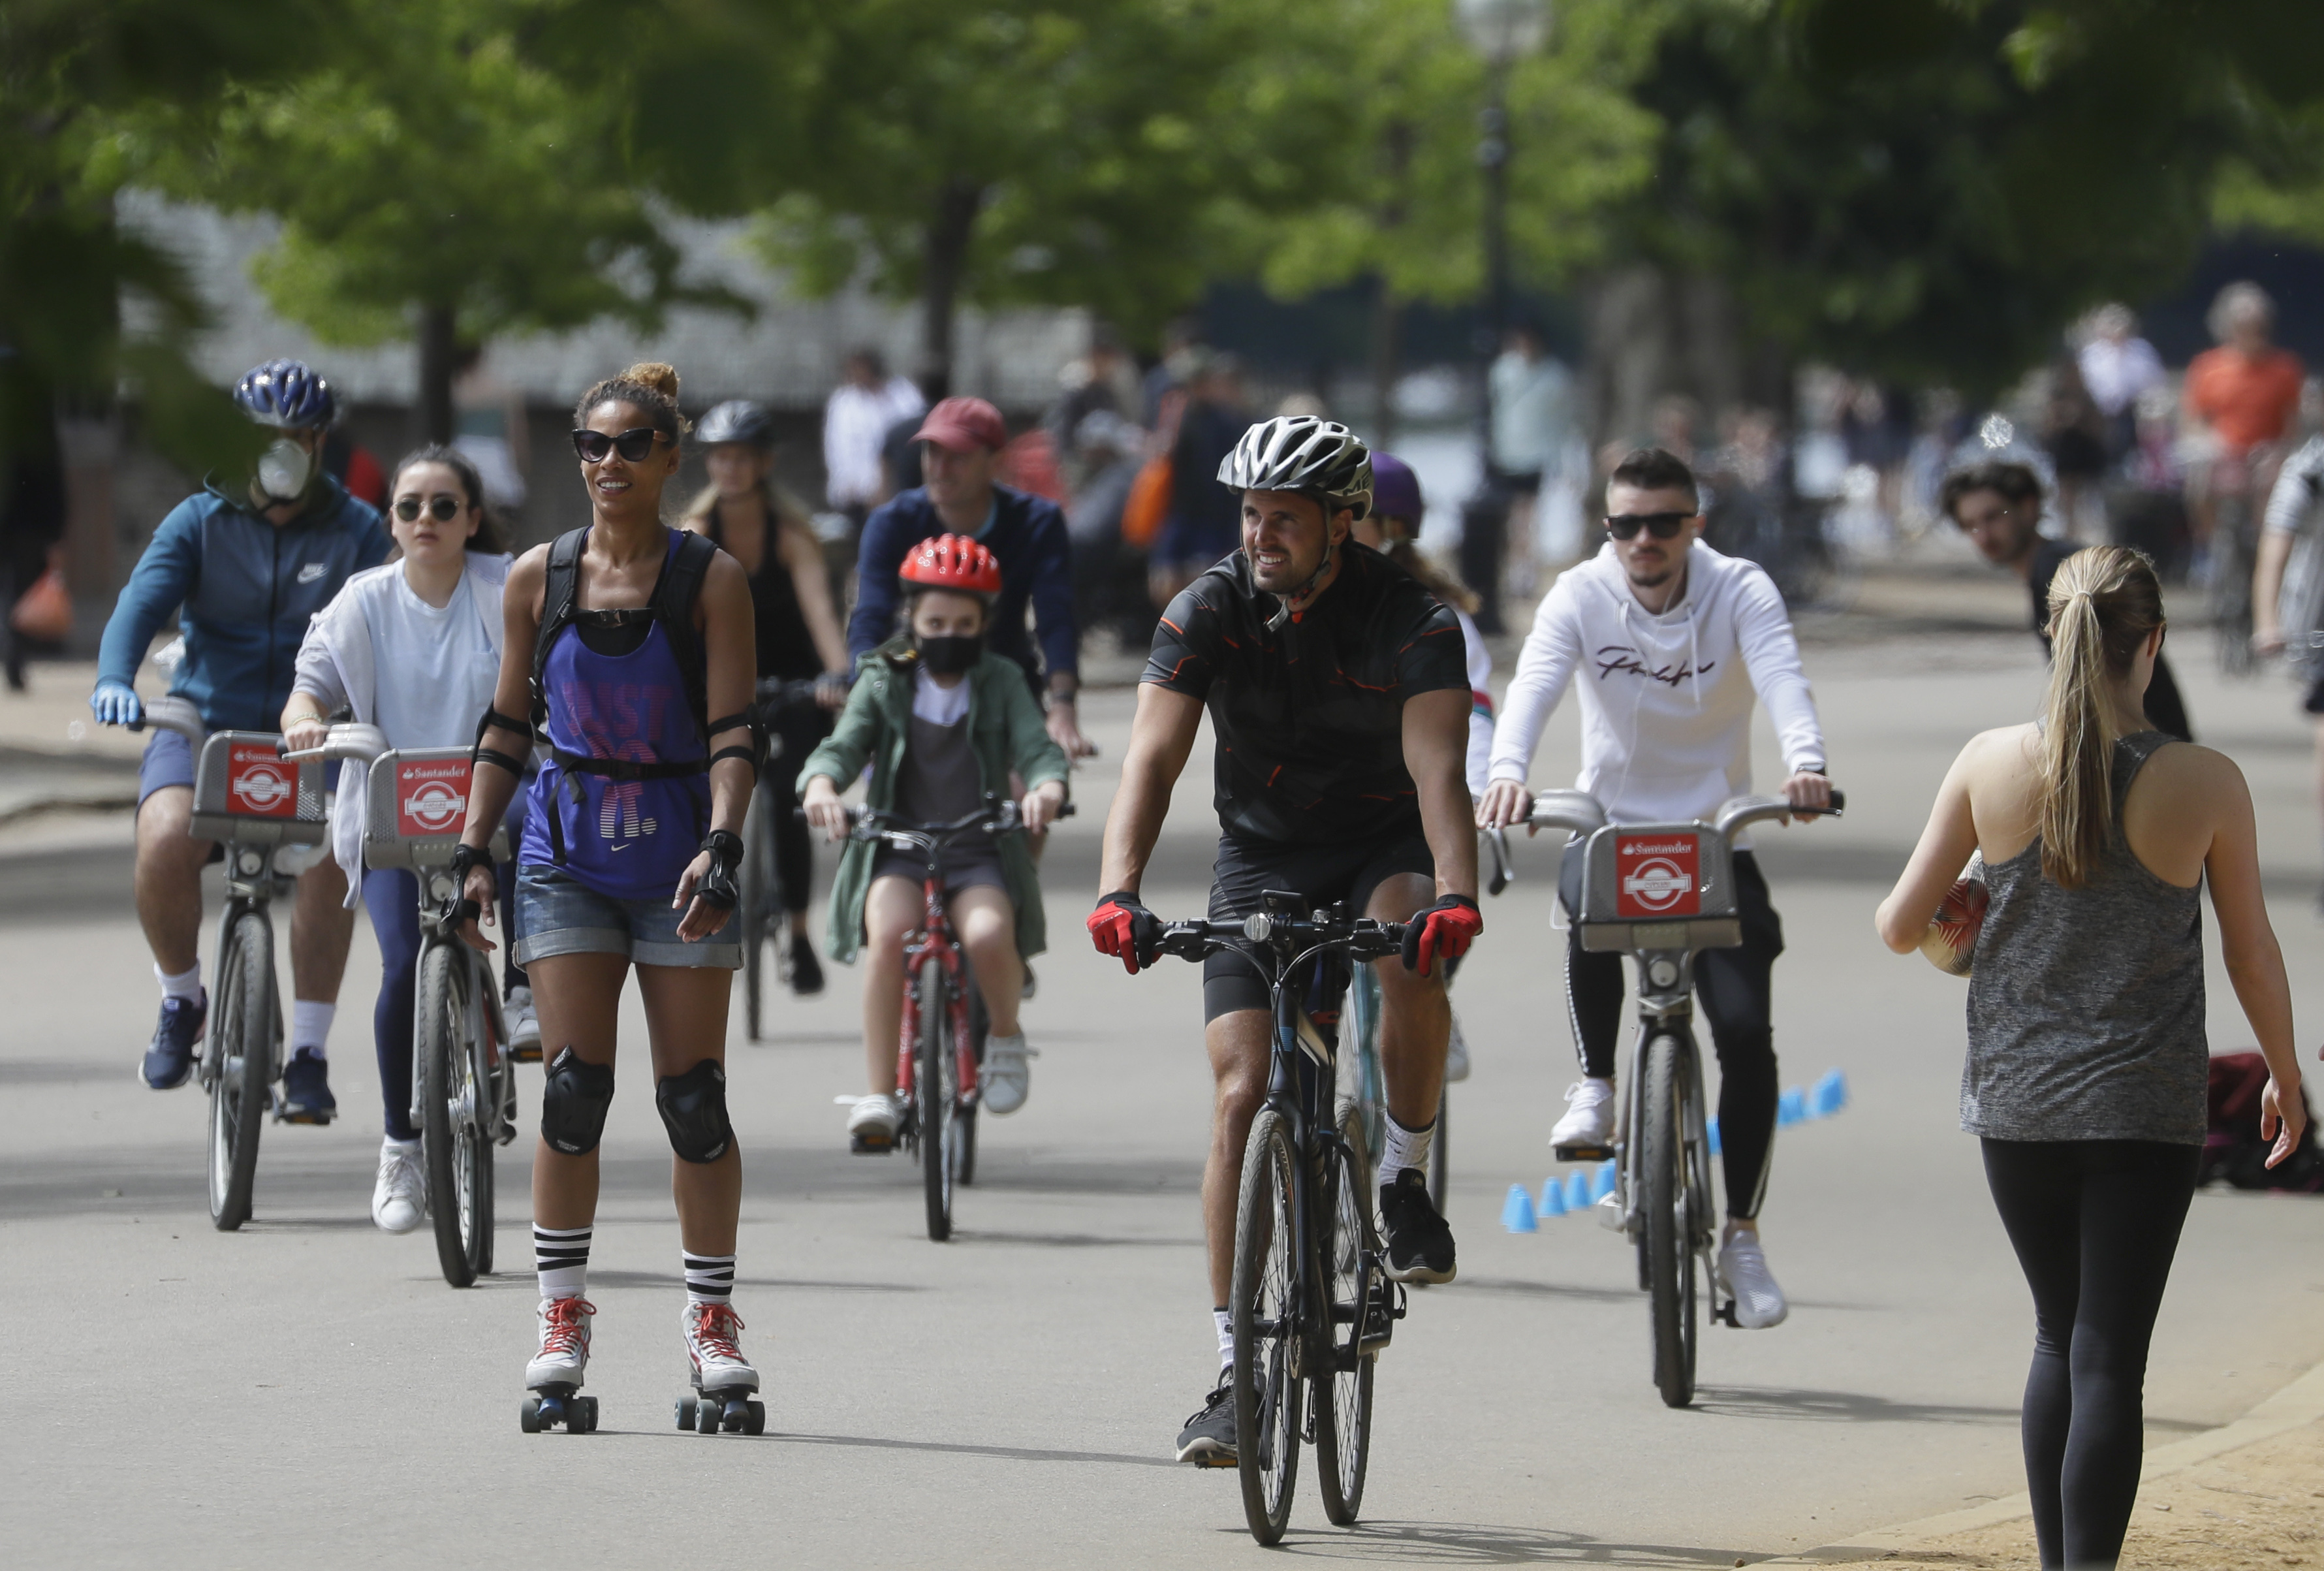 People exercise in Hyde Park as lockdown restrictions were relaxed to bring the country out of lockdown amid the coronavirus pandemic, in London, Sunday, May 17, 2020. (AP Photo/Kirsty Wigglesworth)